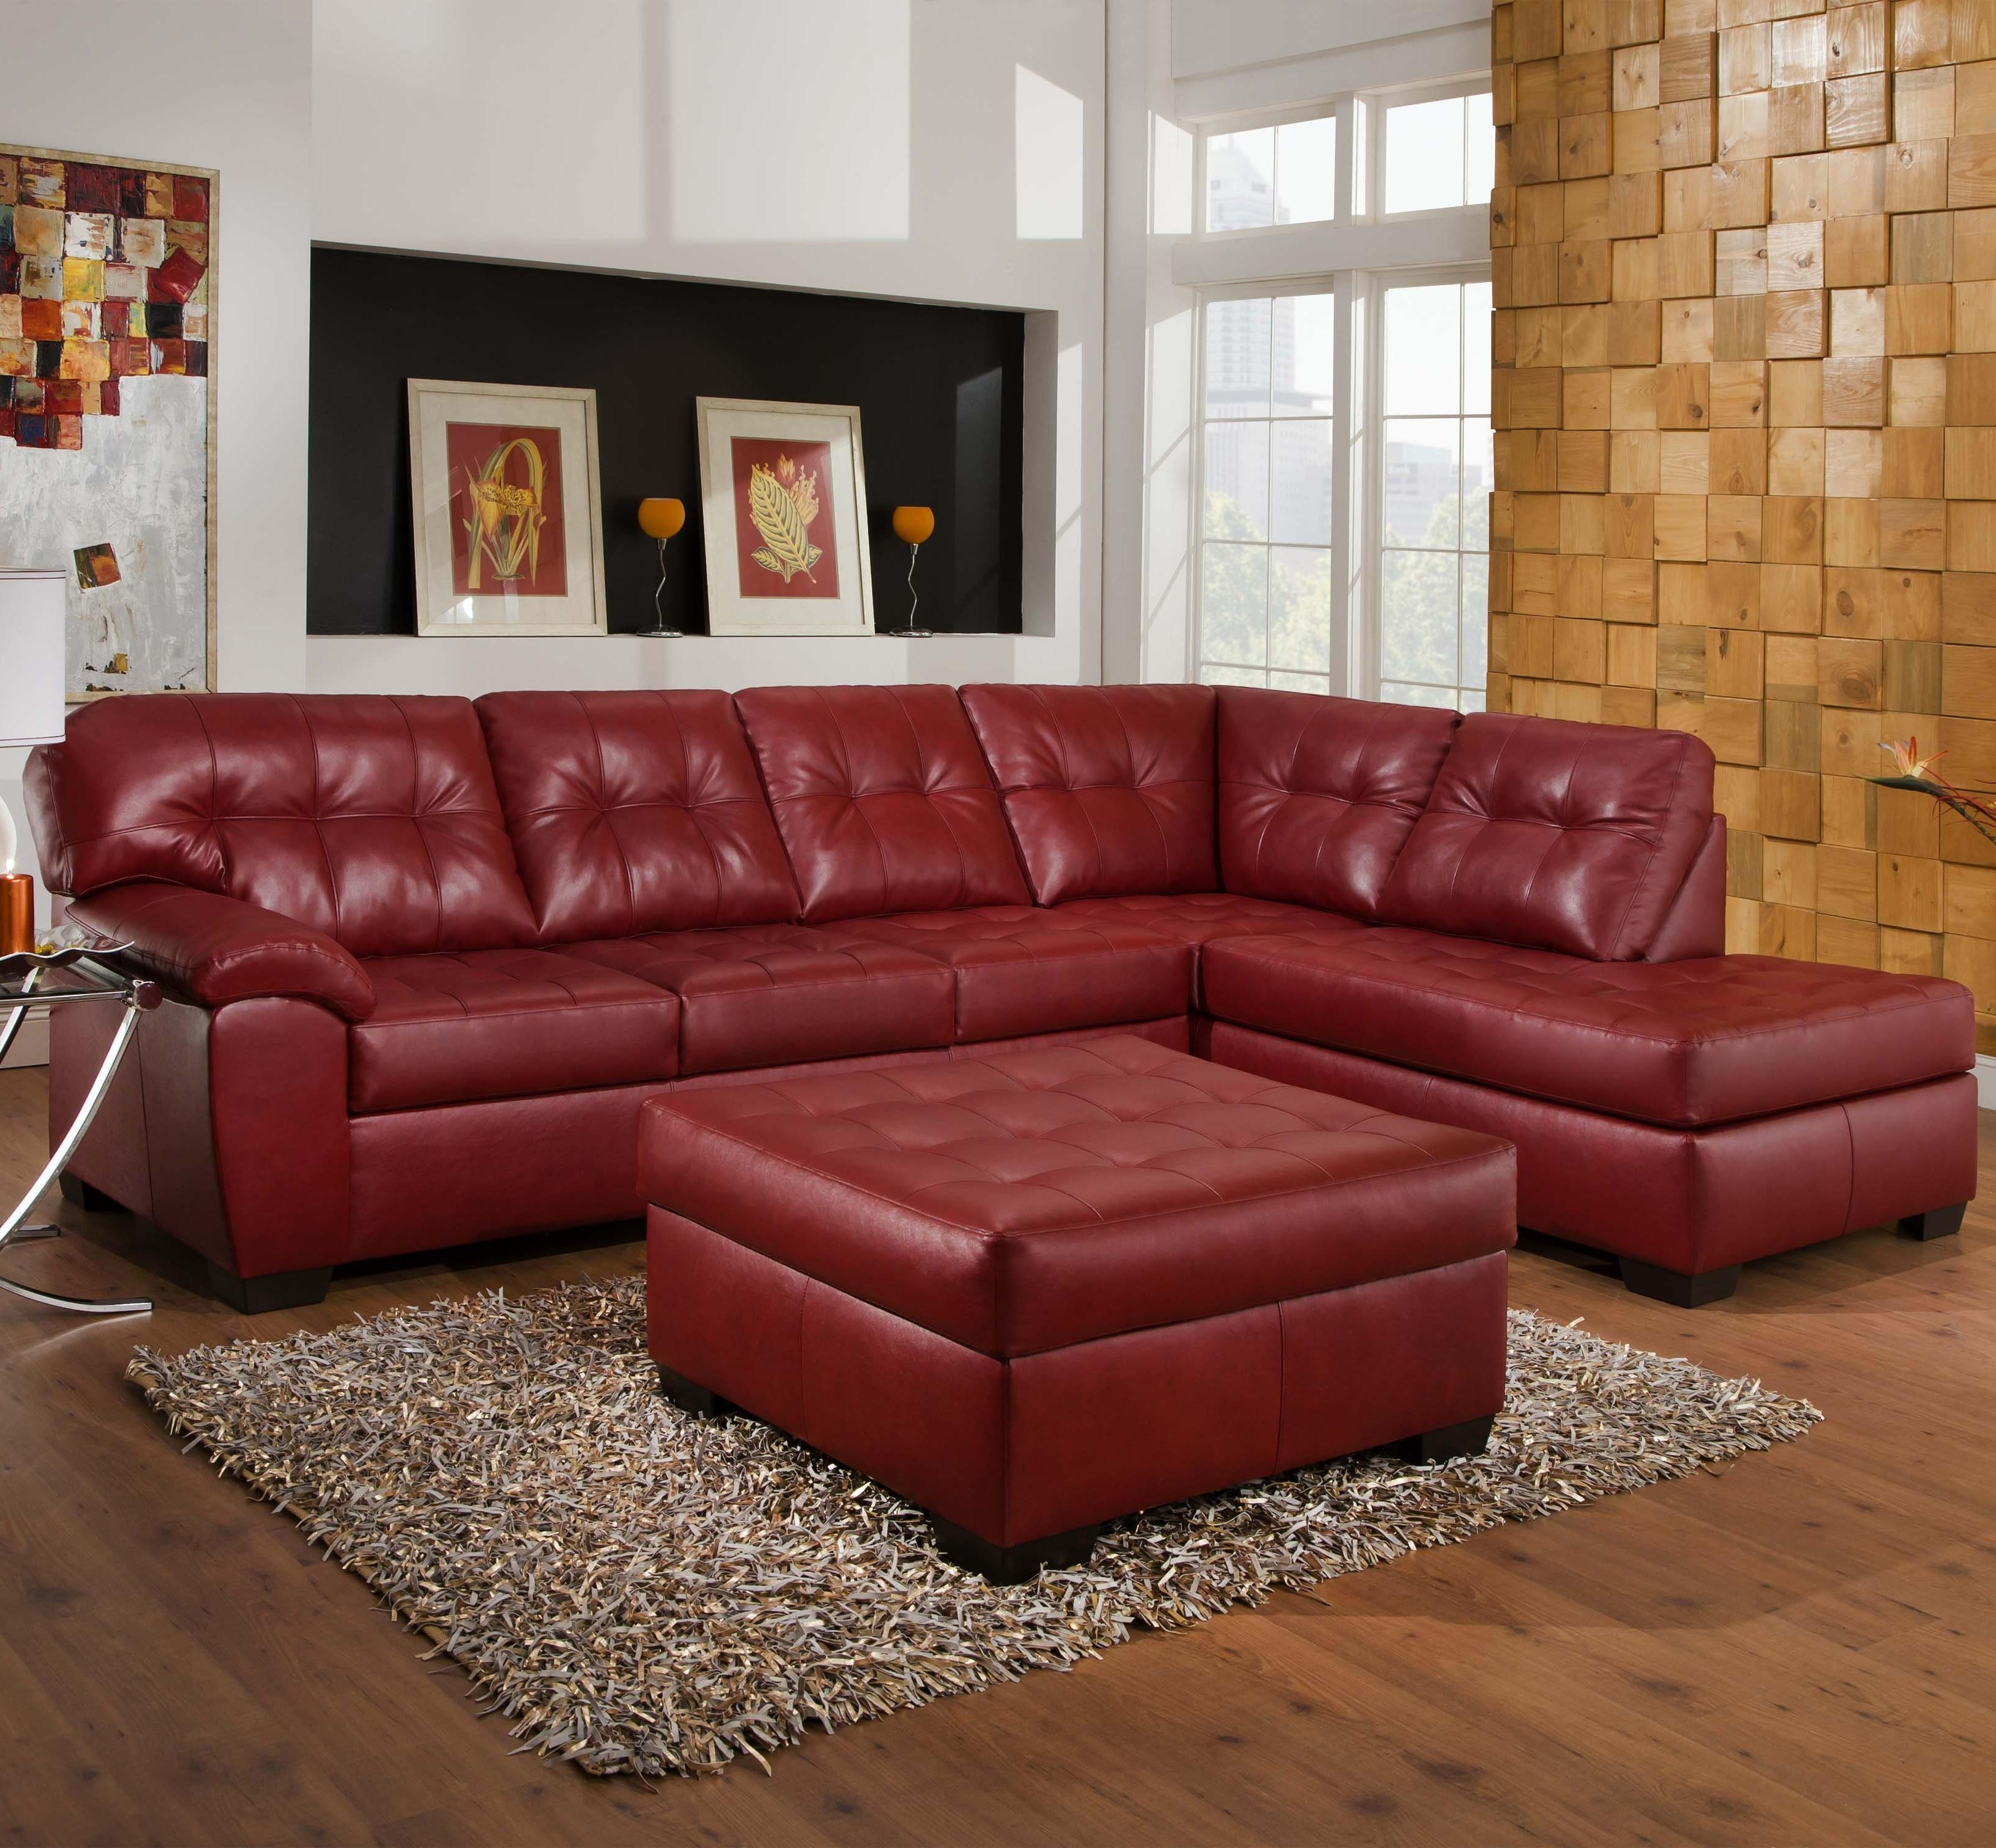 9569 2 Piece Sectional With Tufted Seats & Backsimmons throughout Jackson Tn Sectional Sofas (Image 2 of 10)